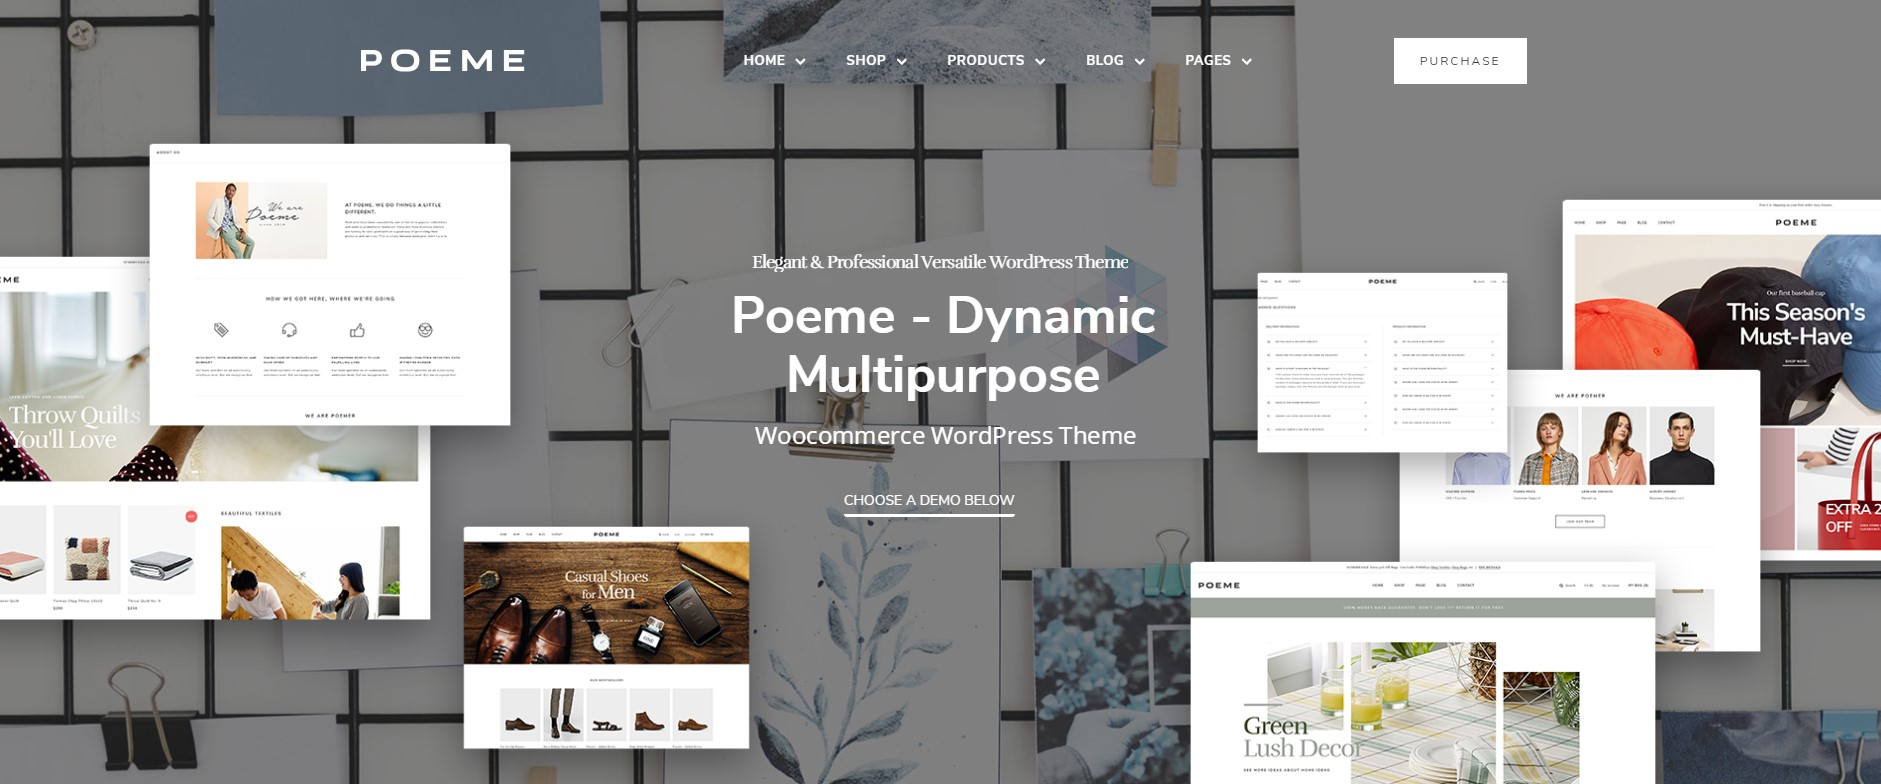 Poeme - Multipurpose WordPress Theme